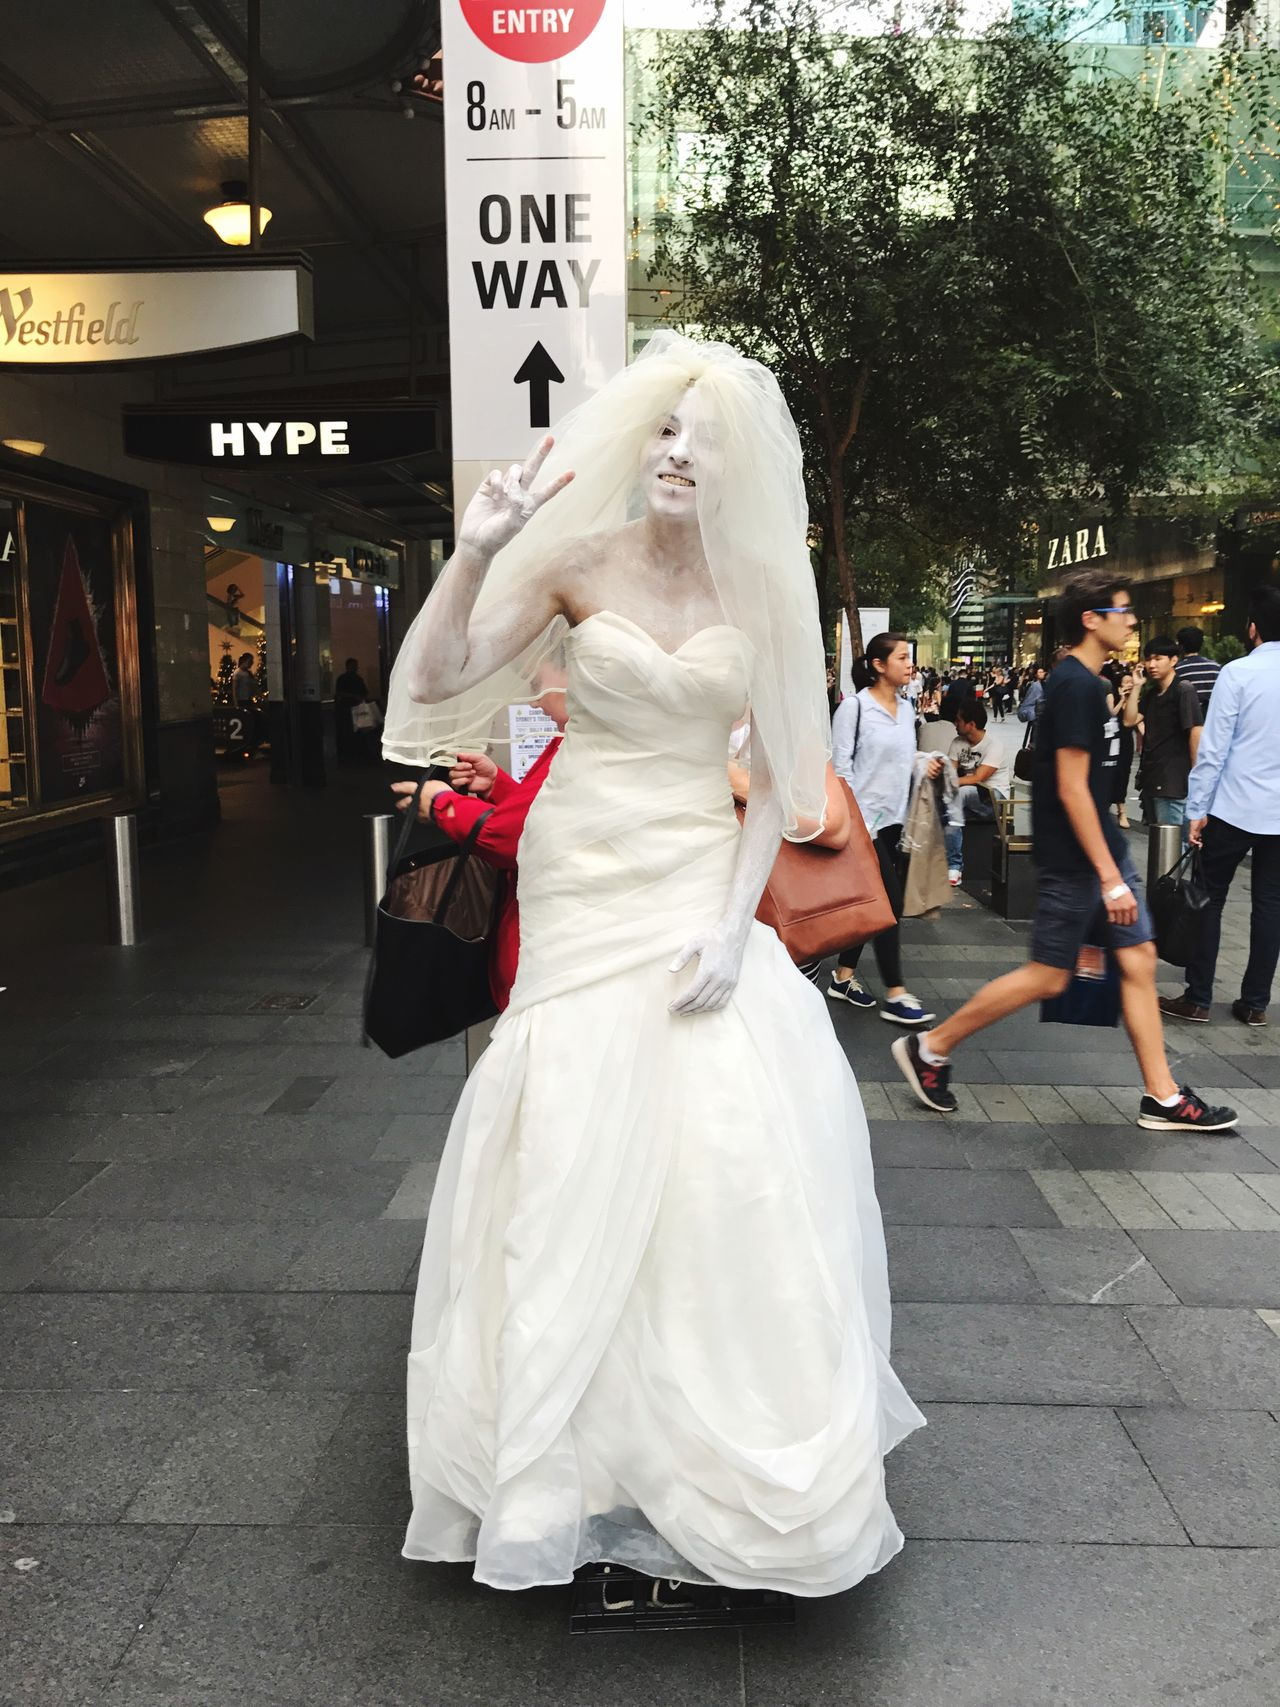 Bride Will Never Be | Street Performer Osanpo Camera